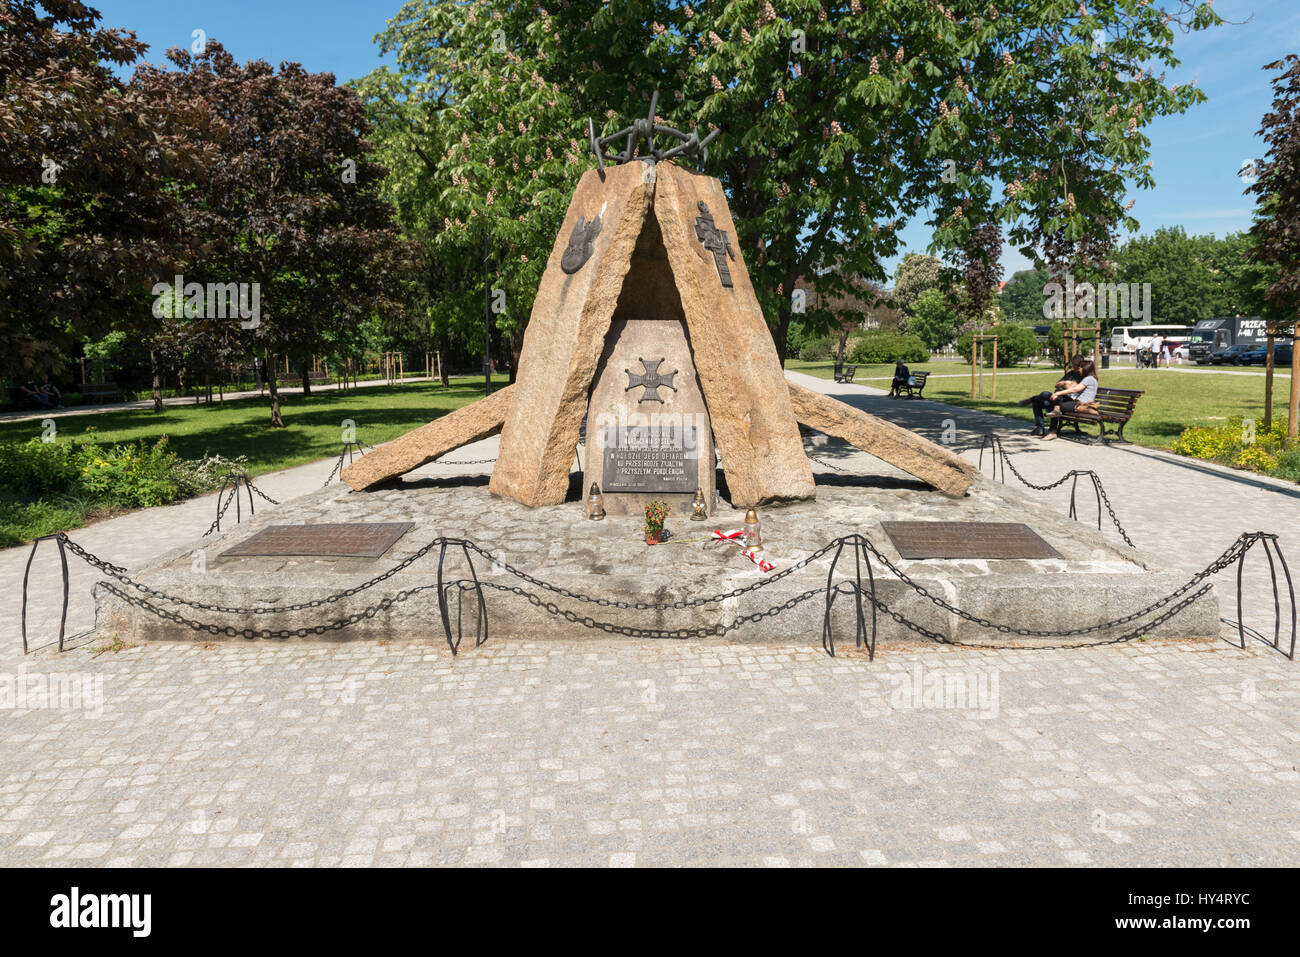 Poland, Wroclaw, Old Town Promenade, Monument for the Victims of Stalinism (Promenada Staromiejska) - Stock Image